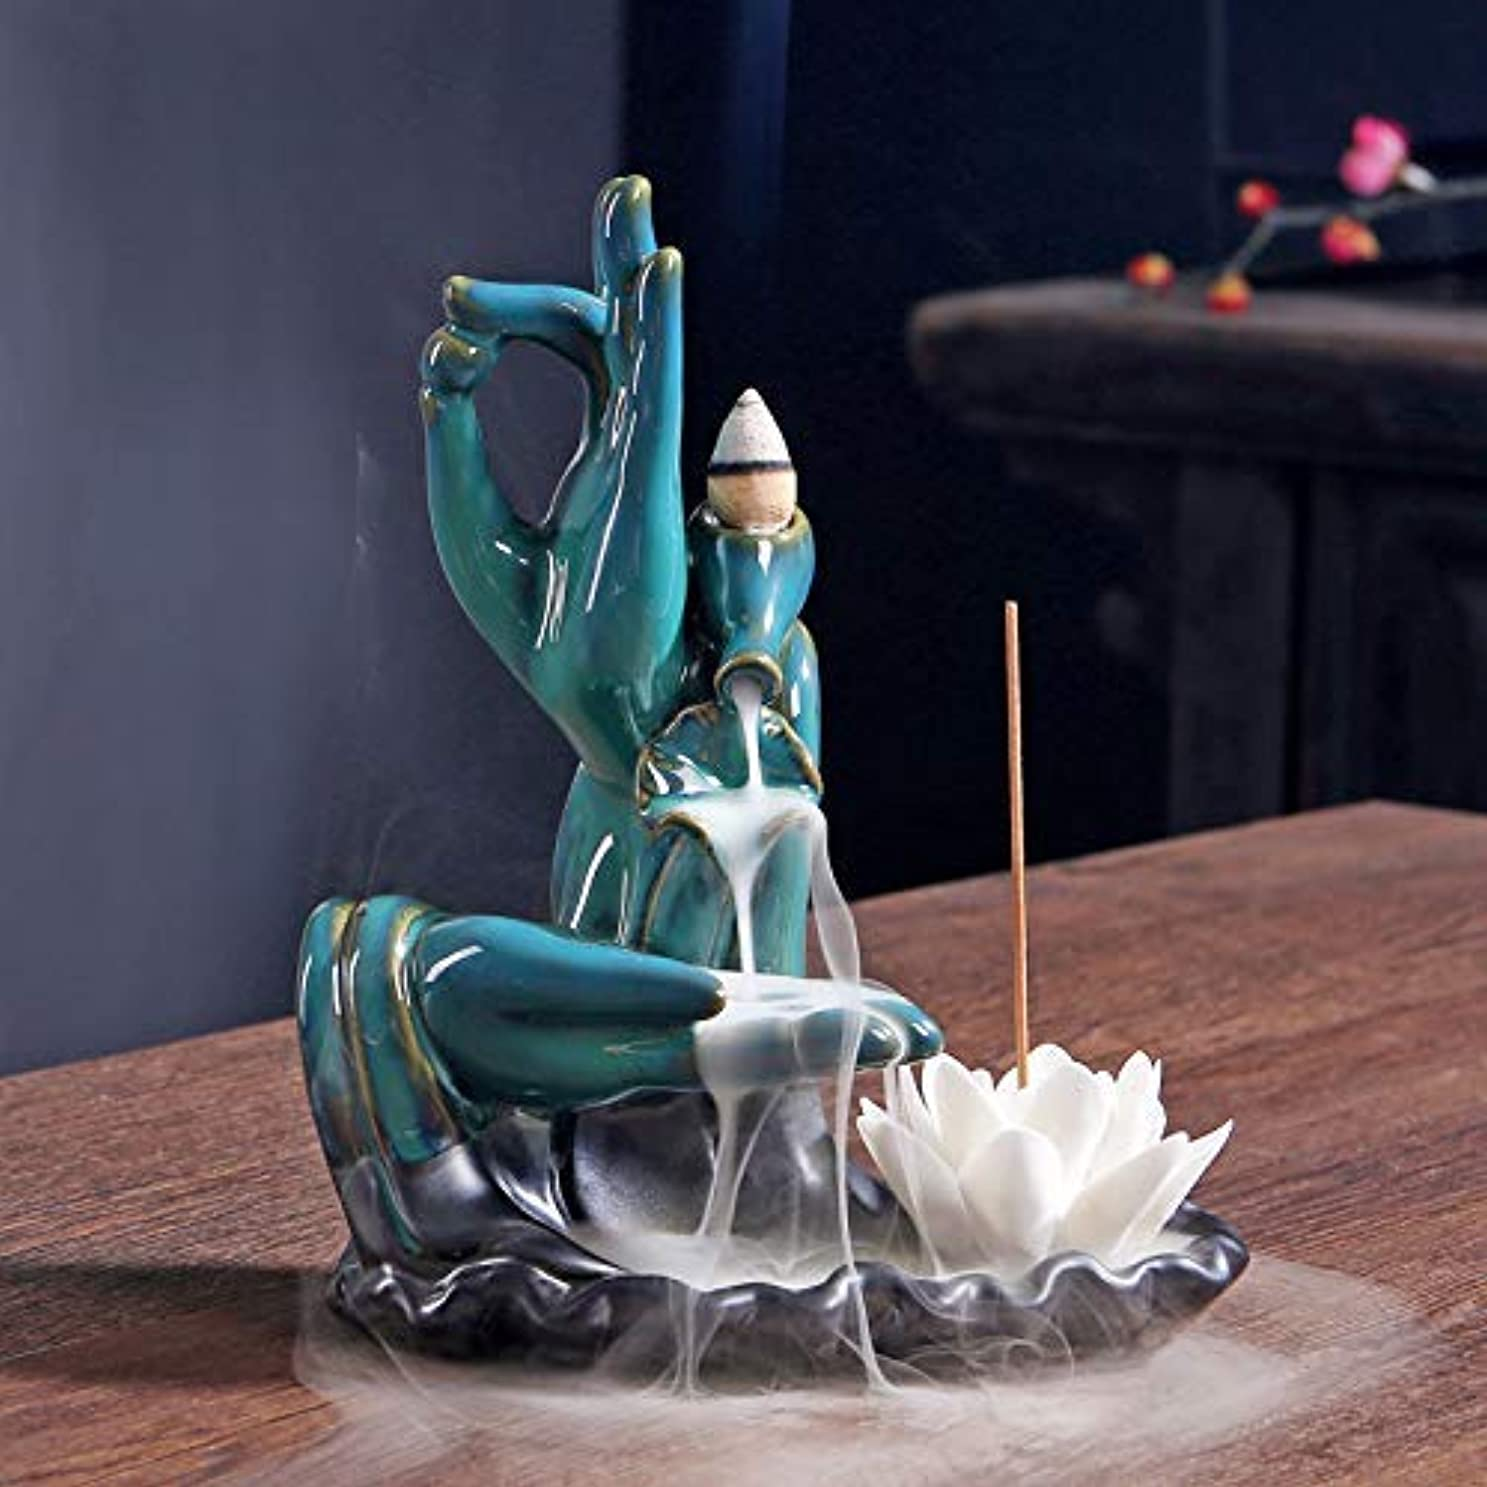 消費するゴシップボイドPHILOGOD blue Buddha hand backflow incense holder ceramics incense cone stick burner Creative Home Decoration...